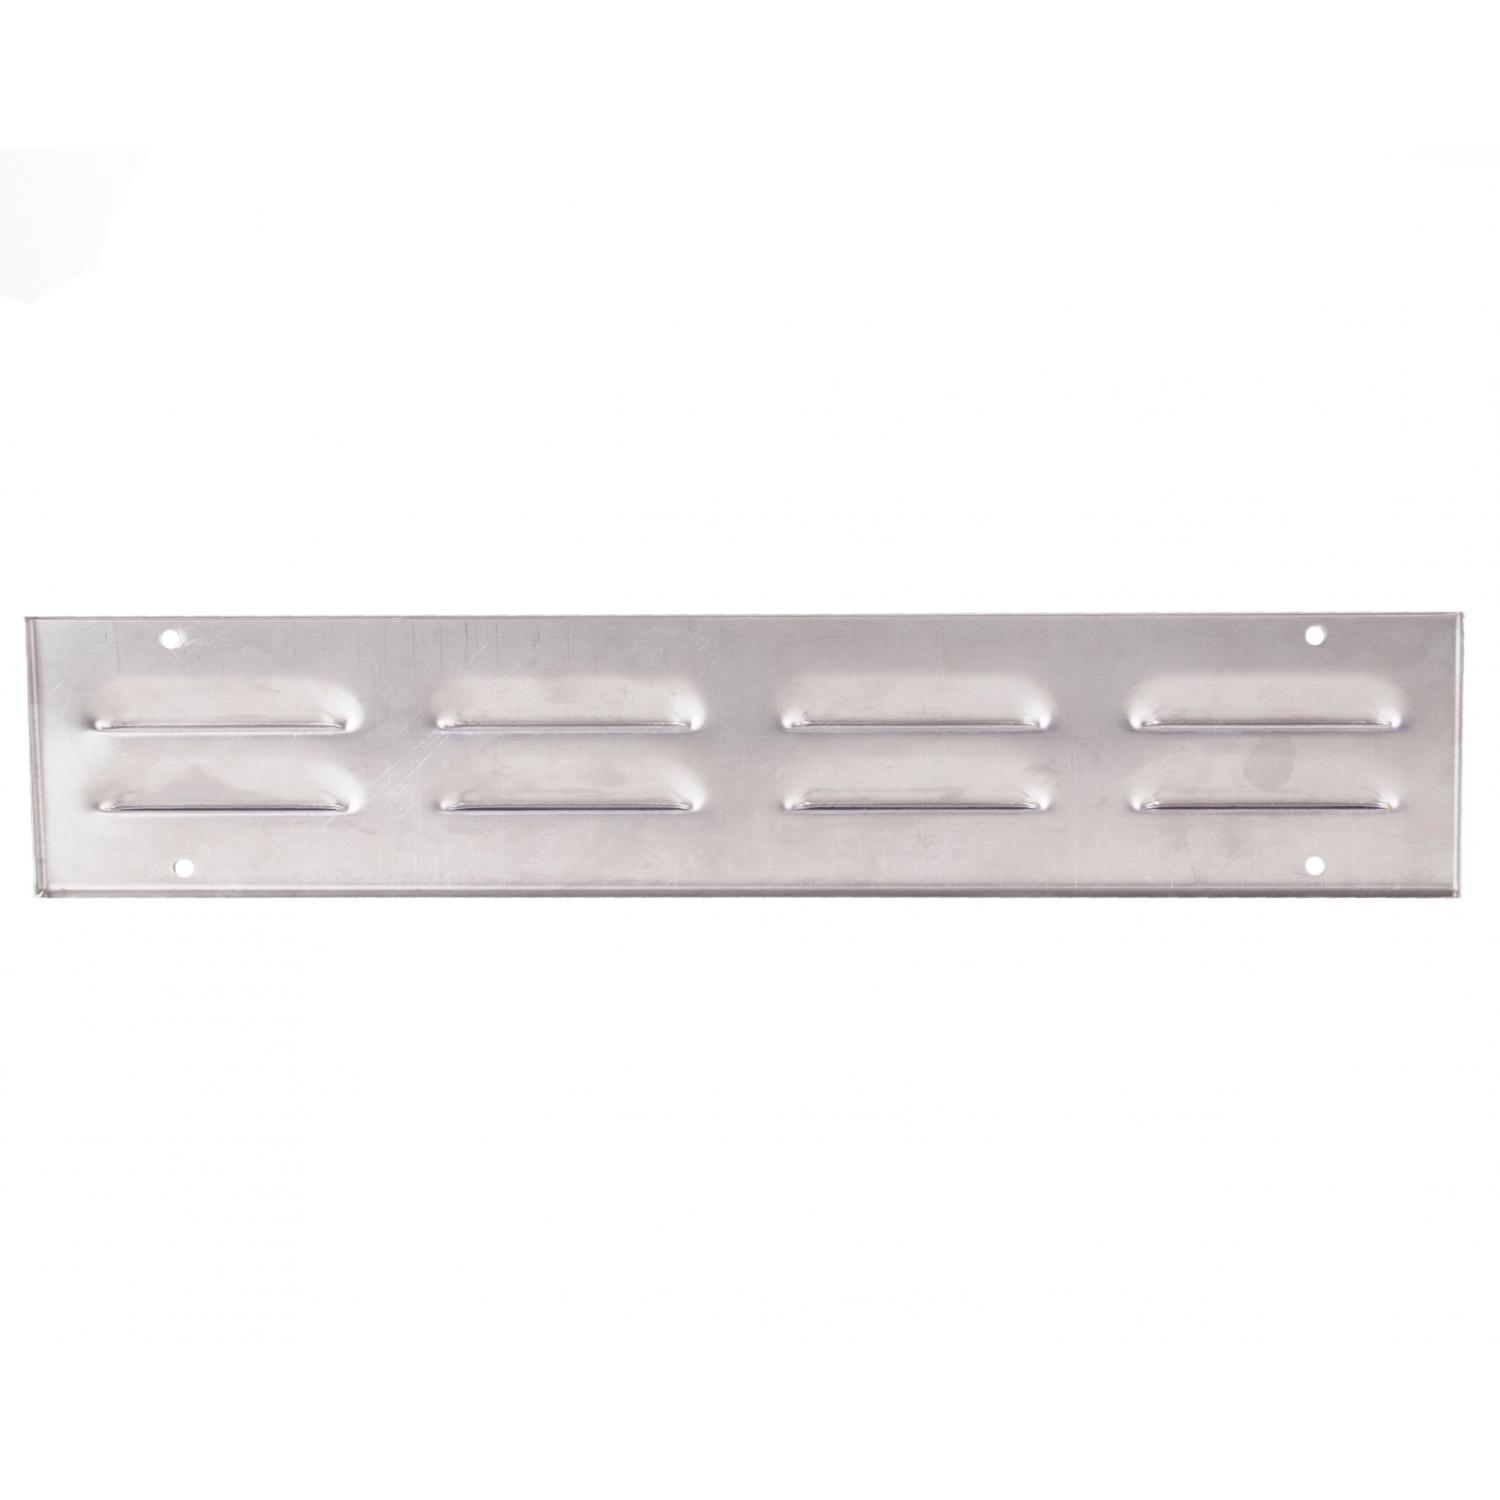 BBQ Guys 3 X 15 Stainless Steel Island Vent